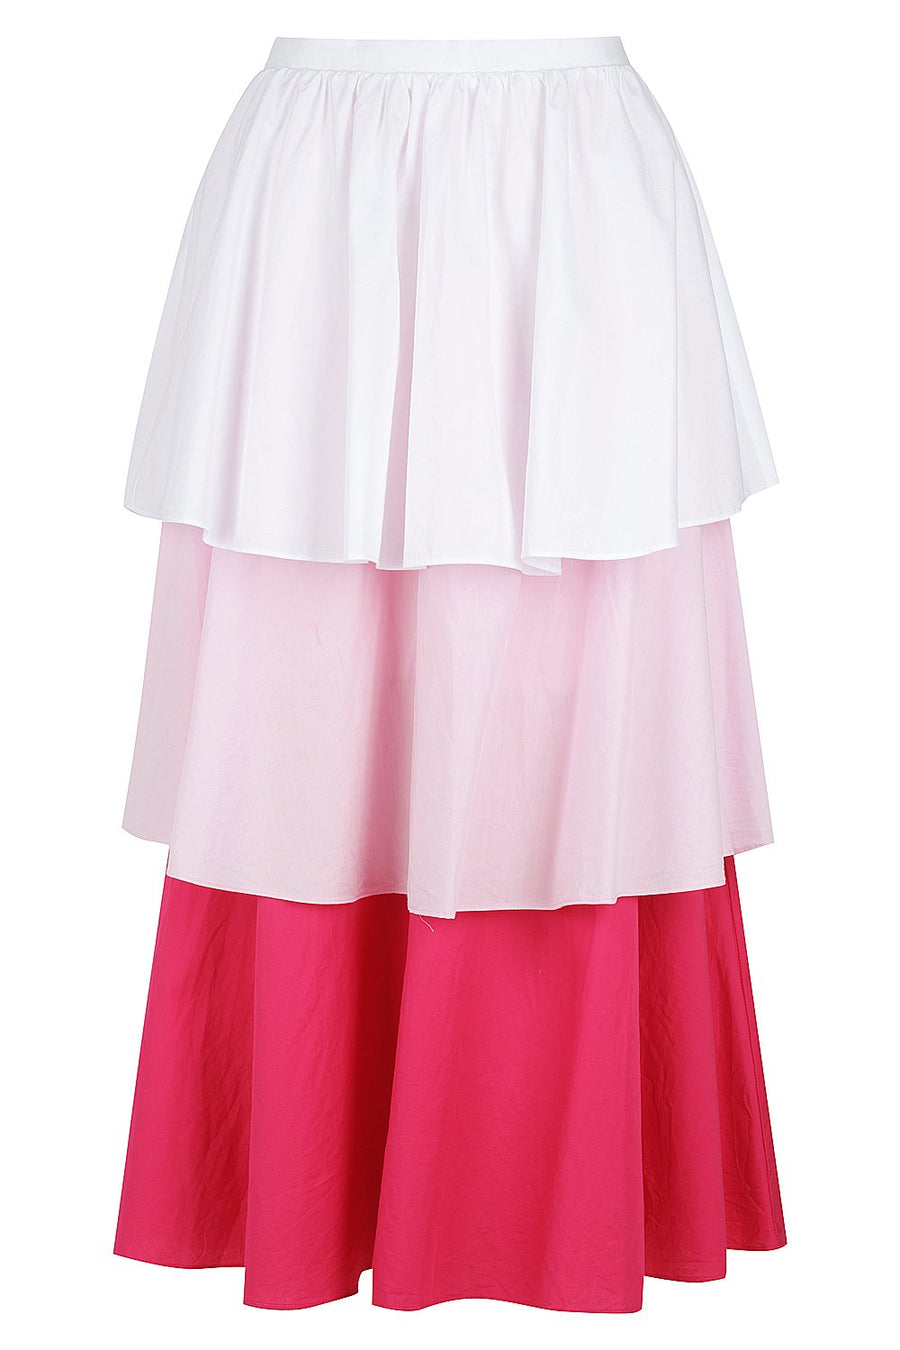 Bande Studio - Tiered Colour Block Skirt - Pretty Pinks